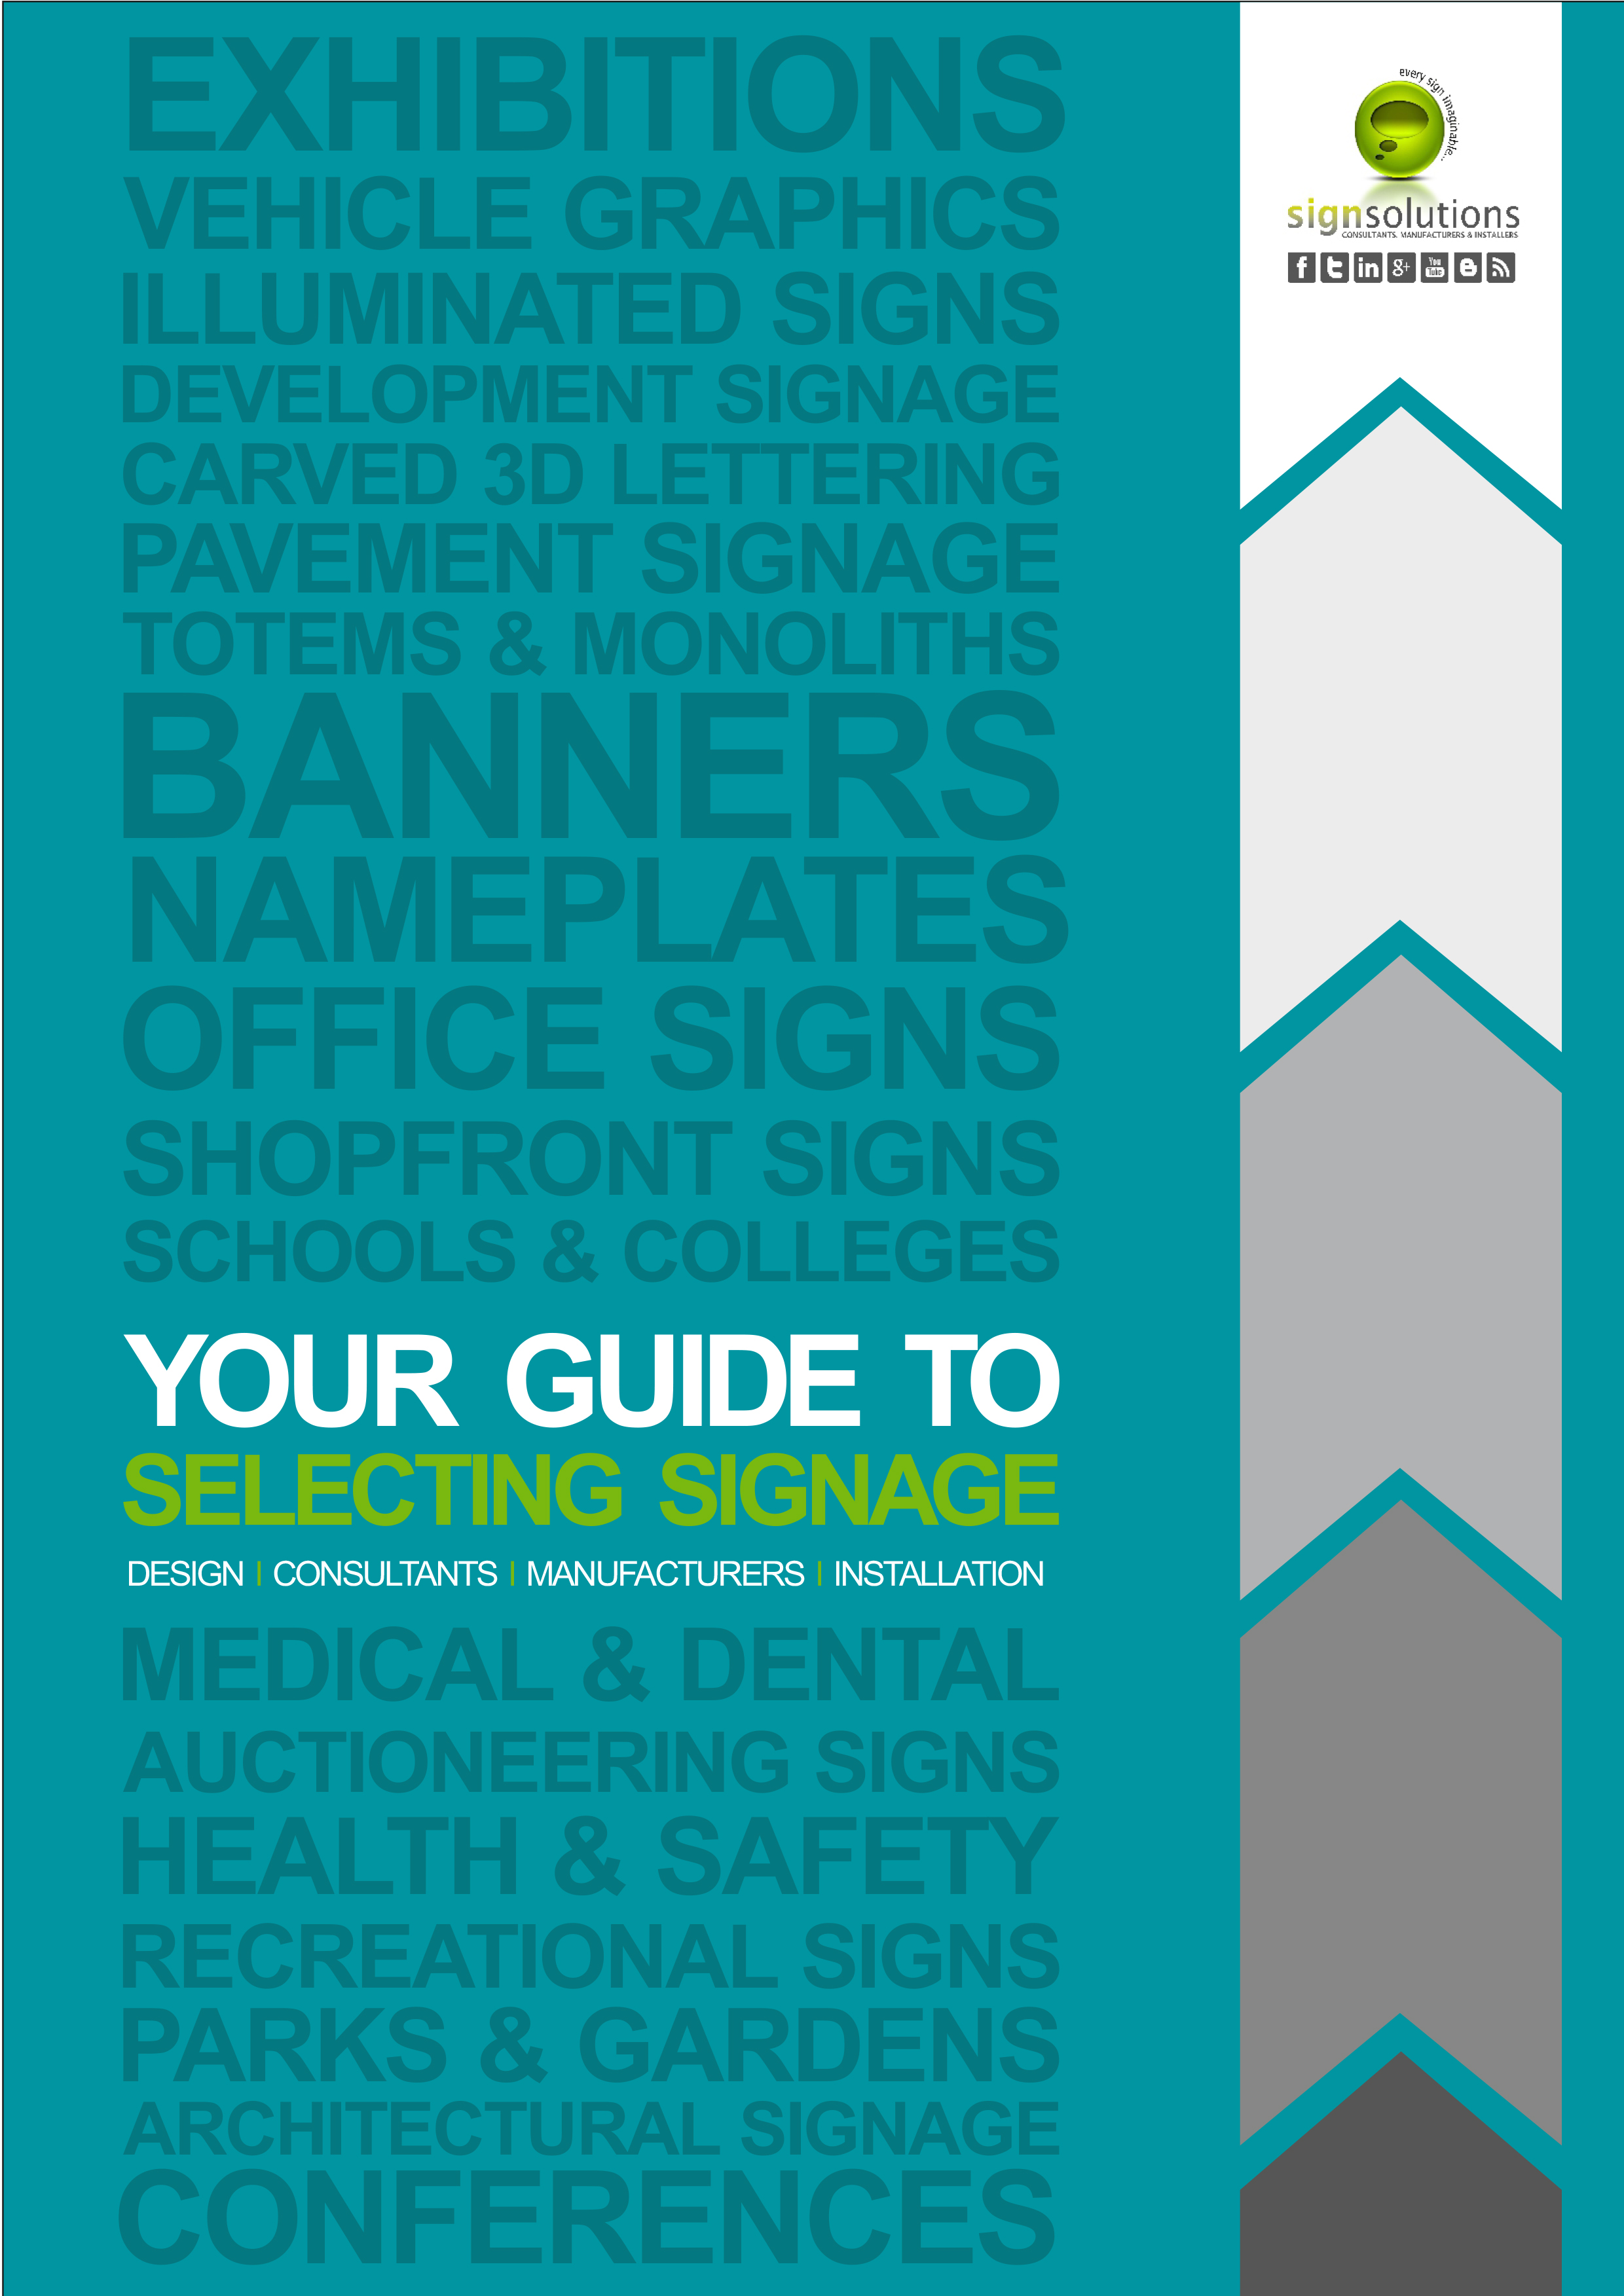 A) Your Guide to Selecting Signage